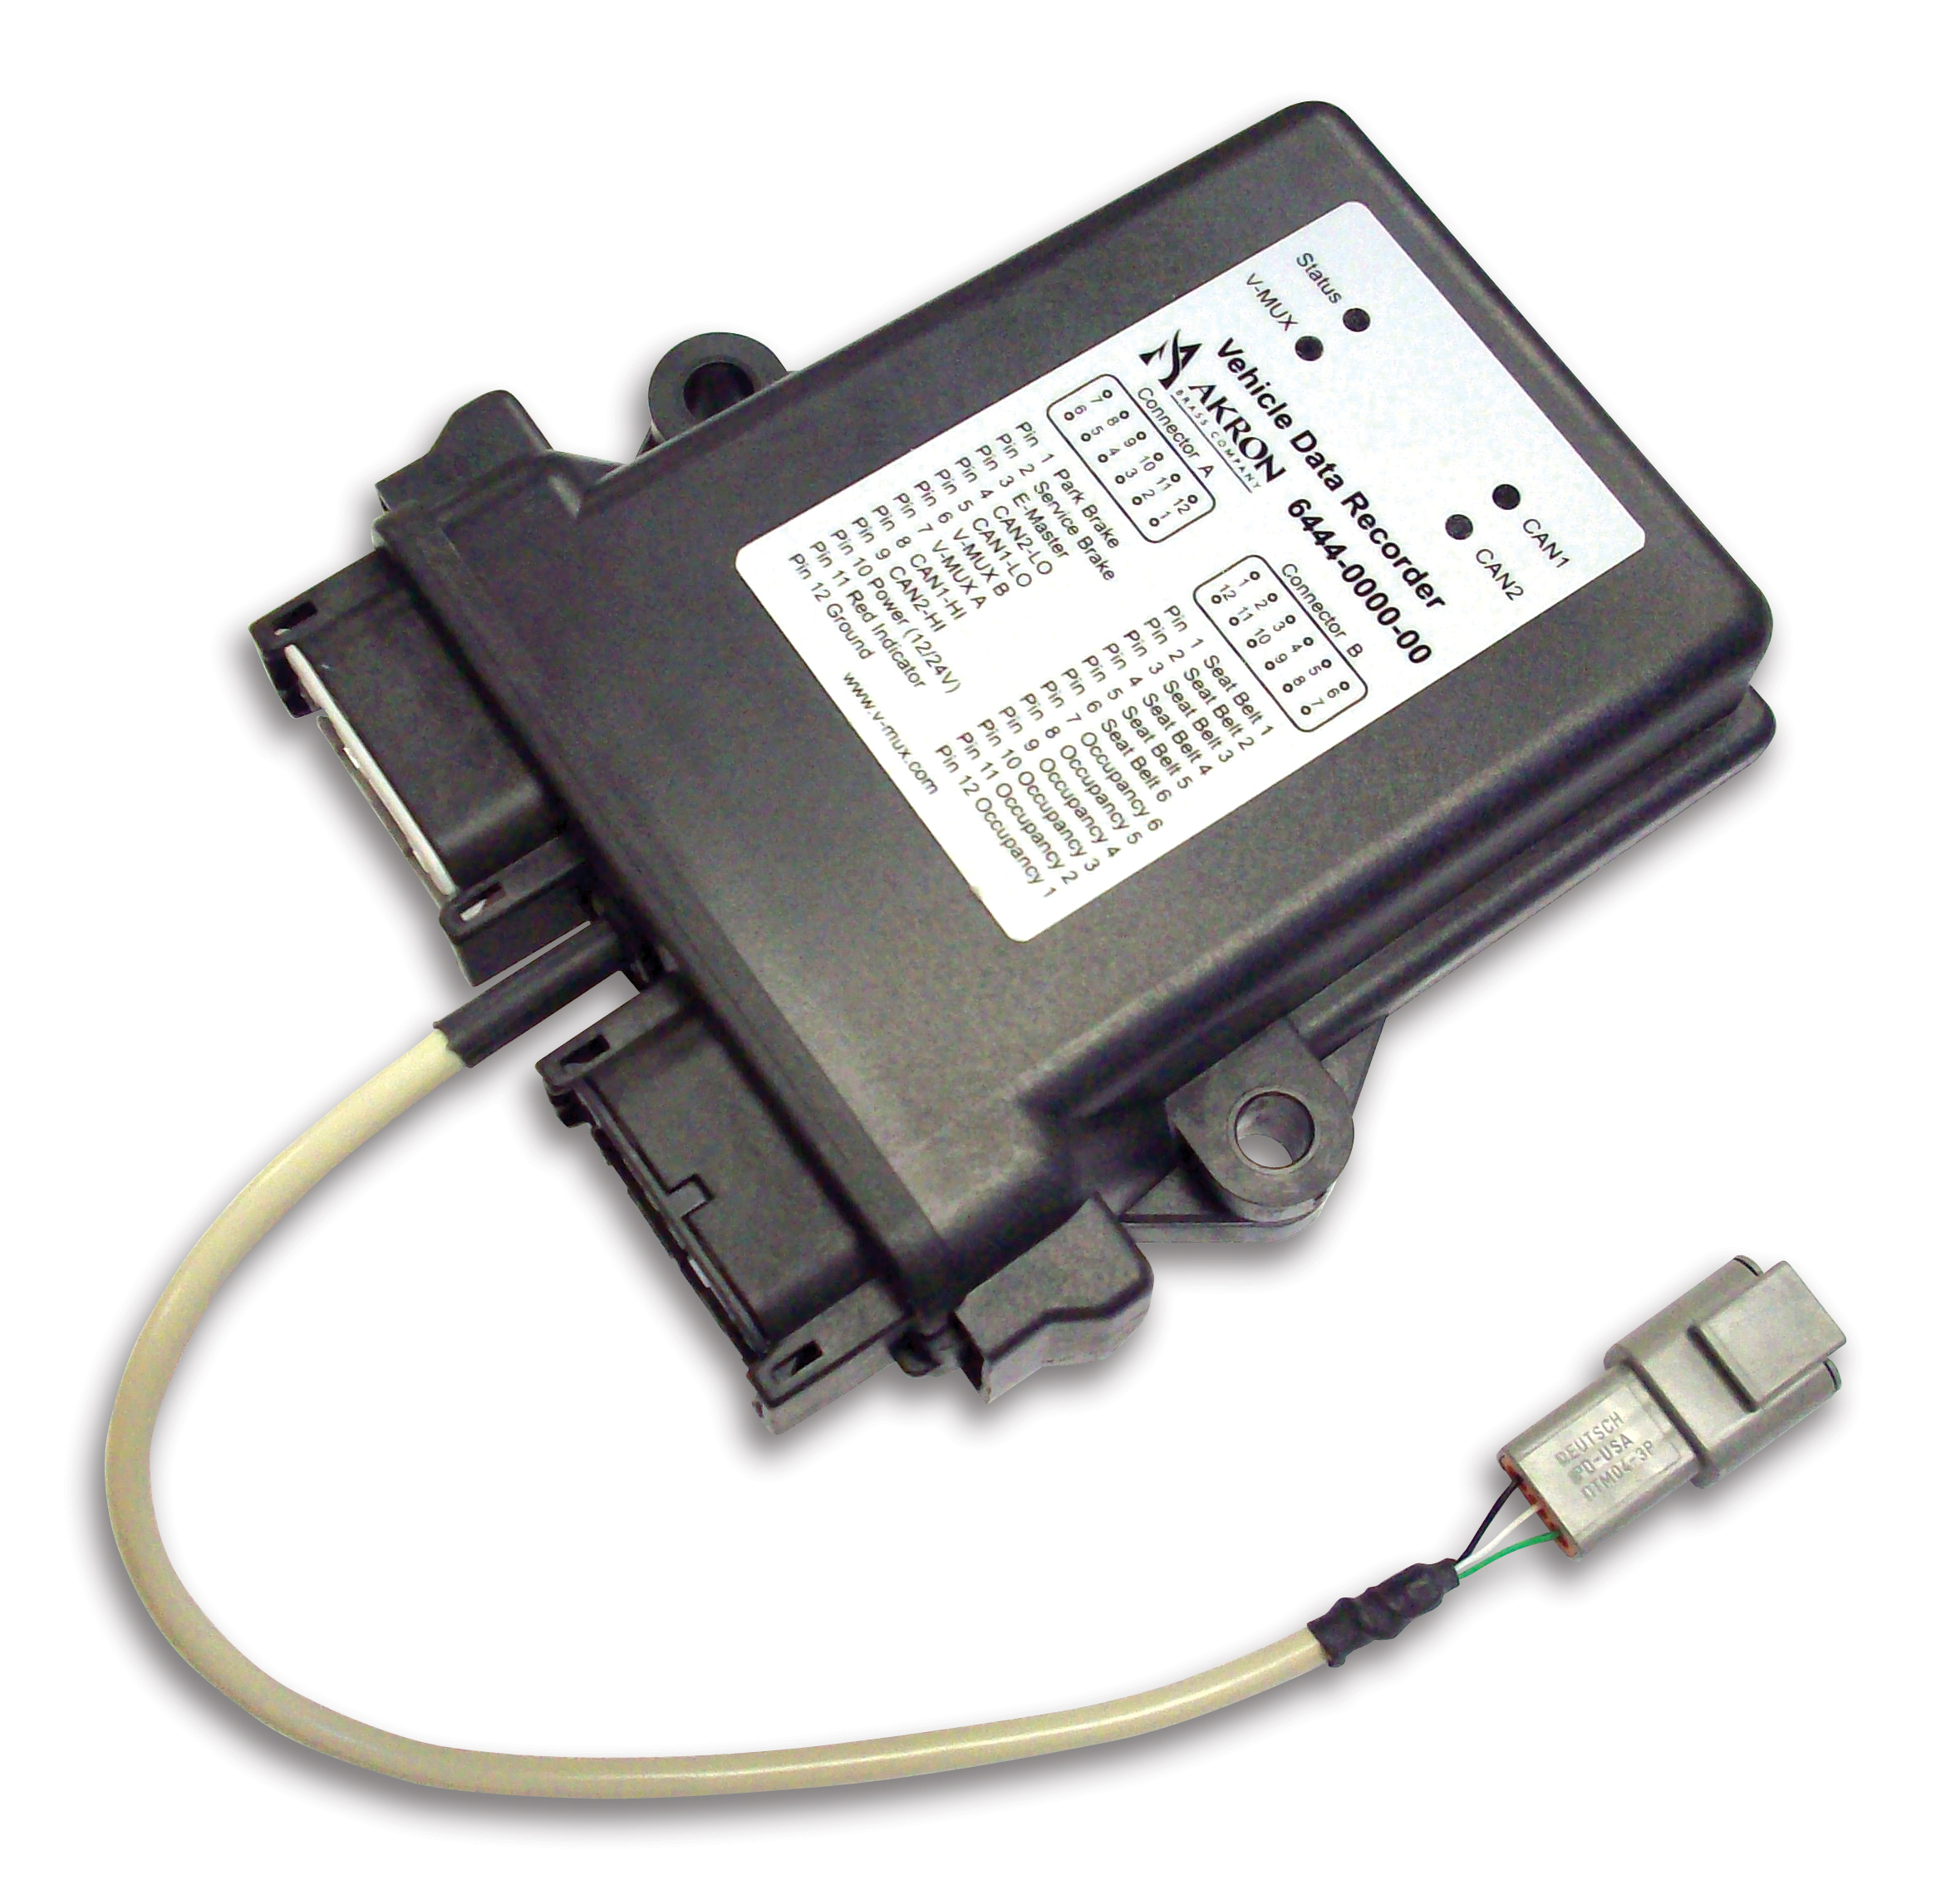 Vehicle Data Recorder and Gateway Module